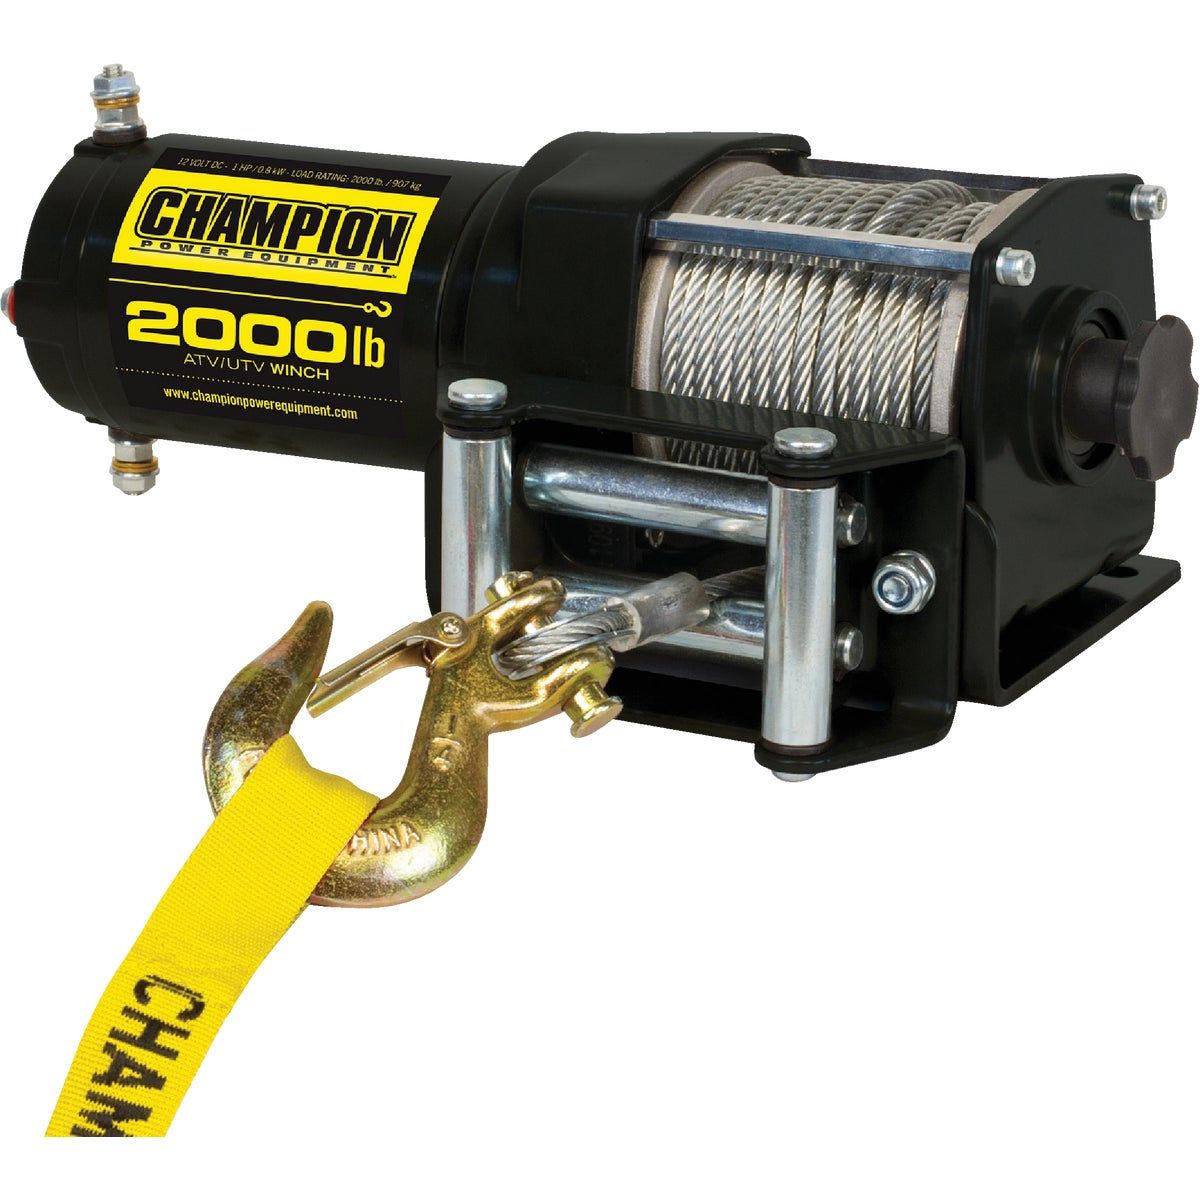 12V DC 1700LB WINCH - 91700 by Warn Industries